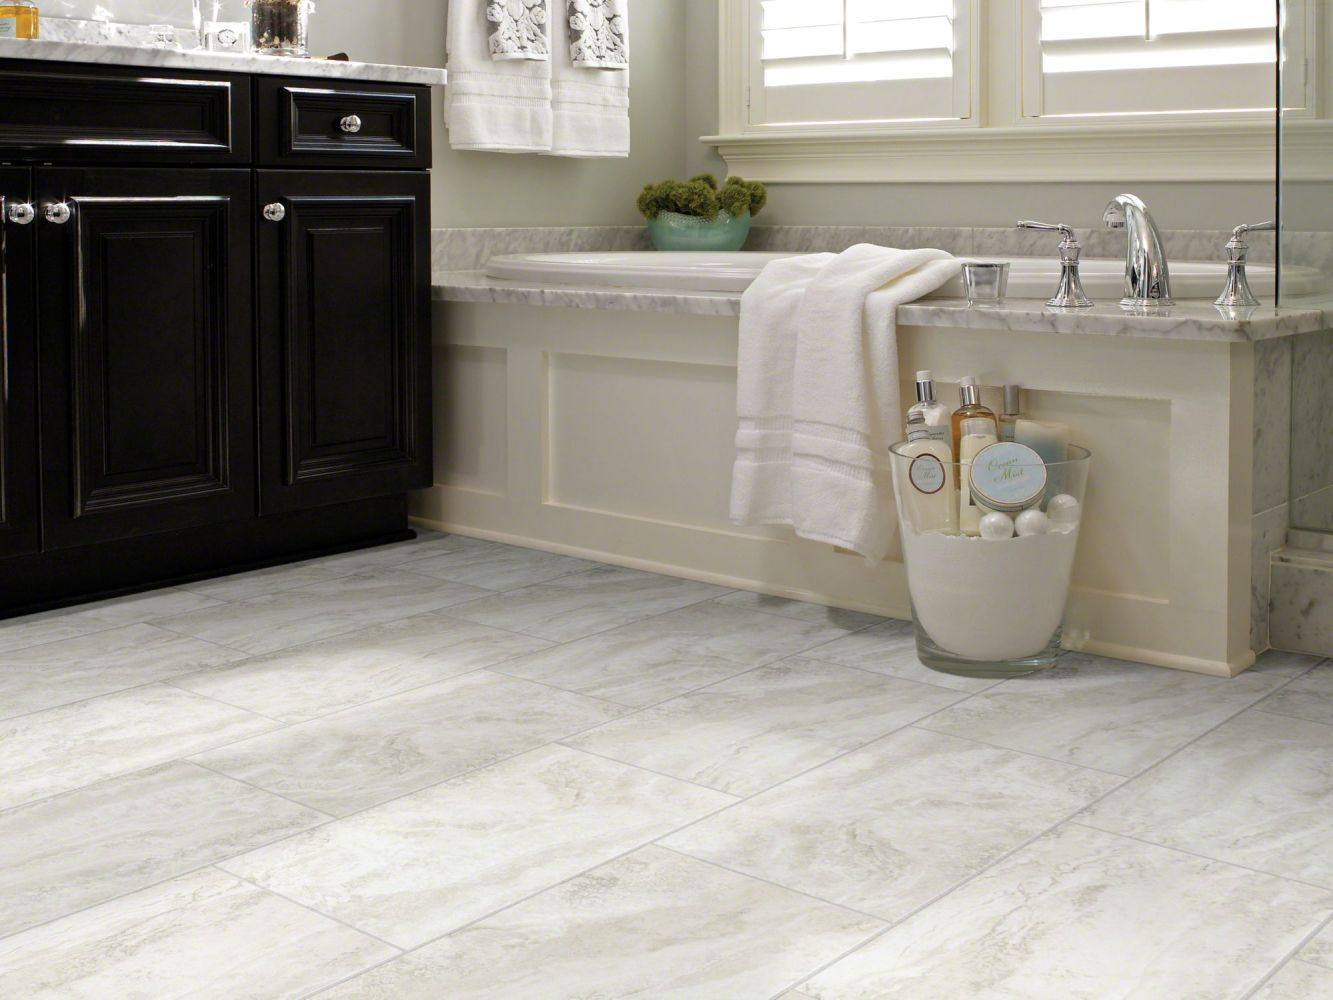 Shaw Floors Resilient Residential Journey Tile Crete 00112_0494V